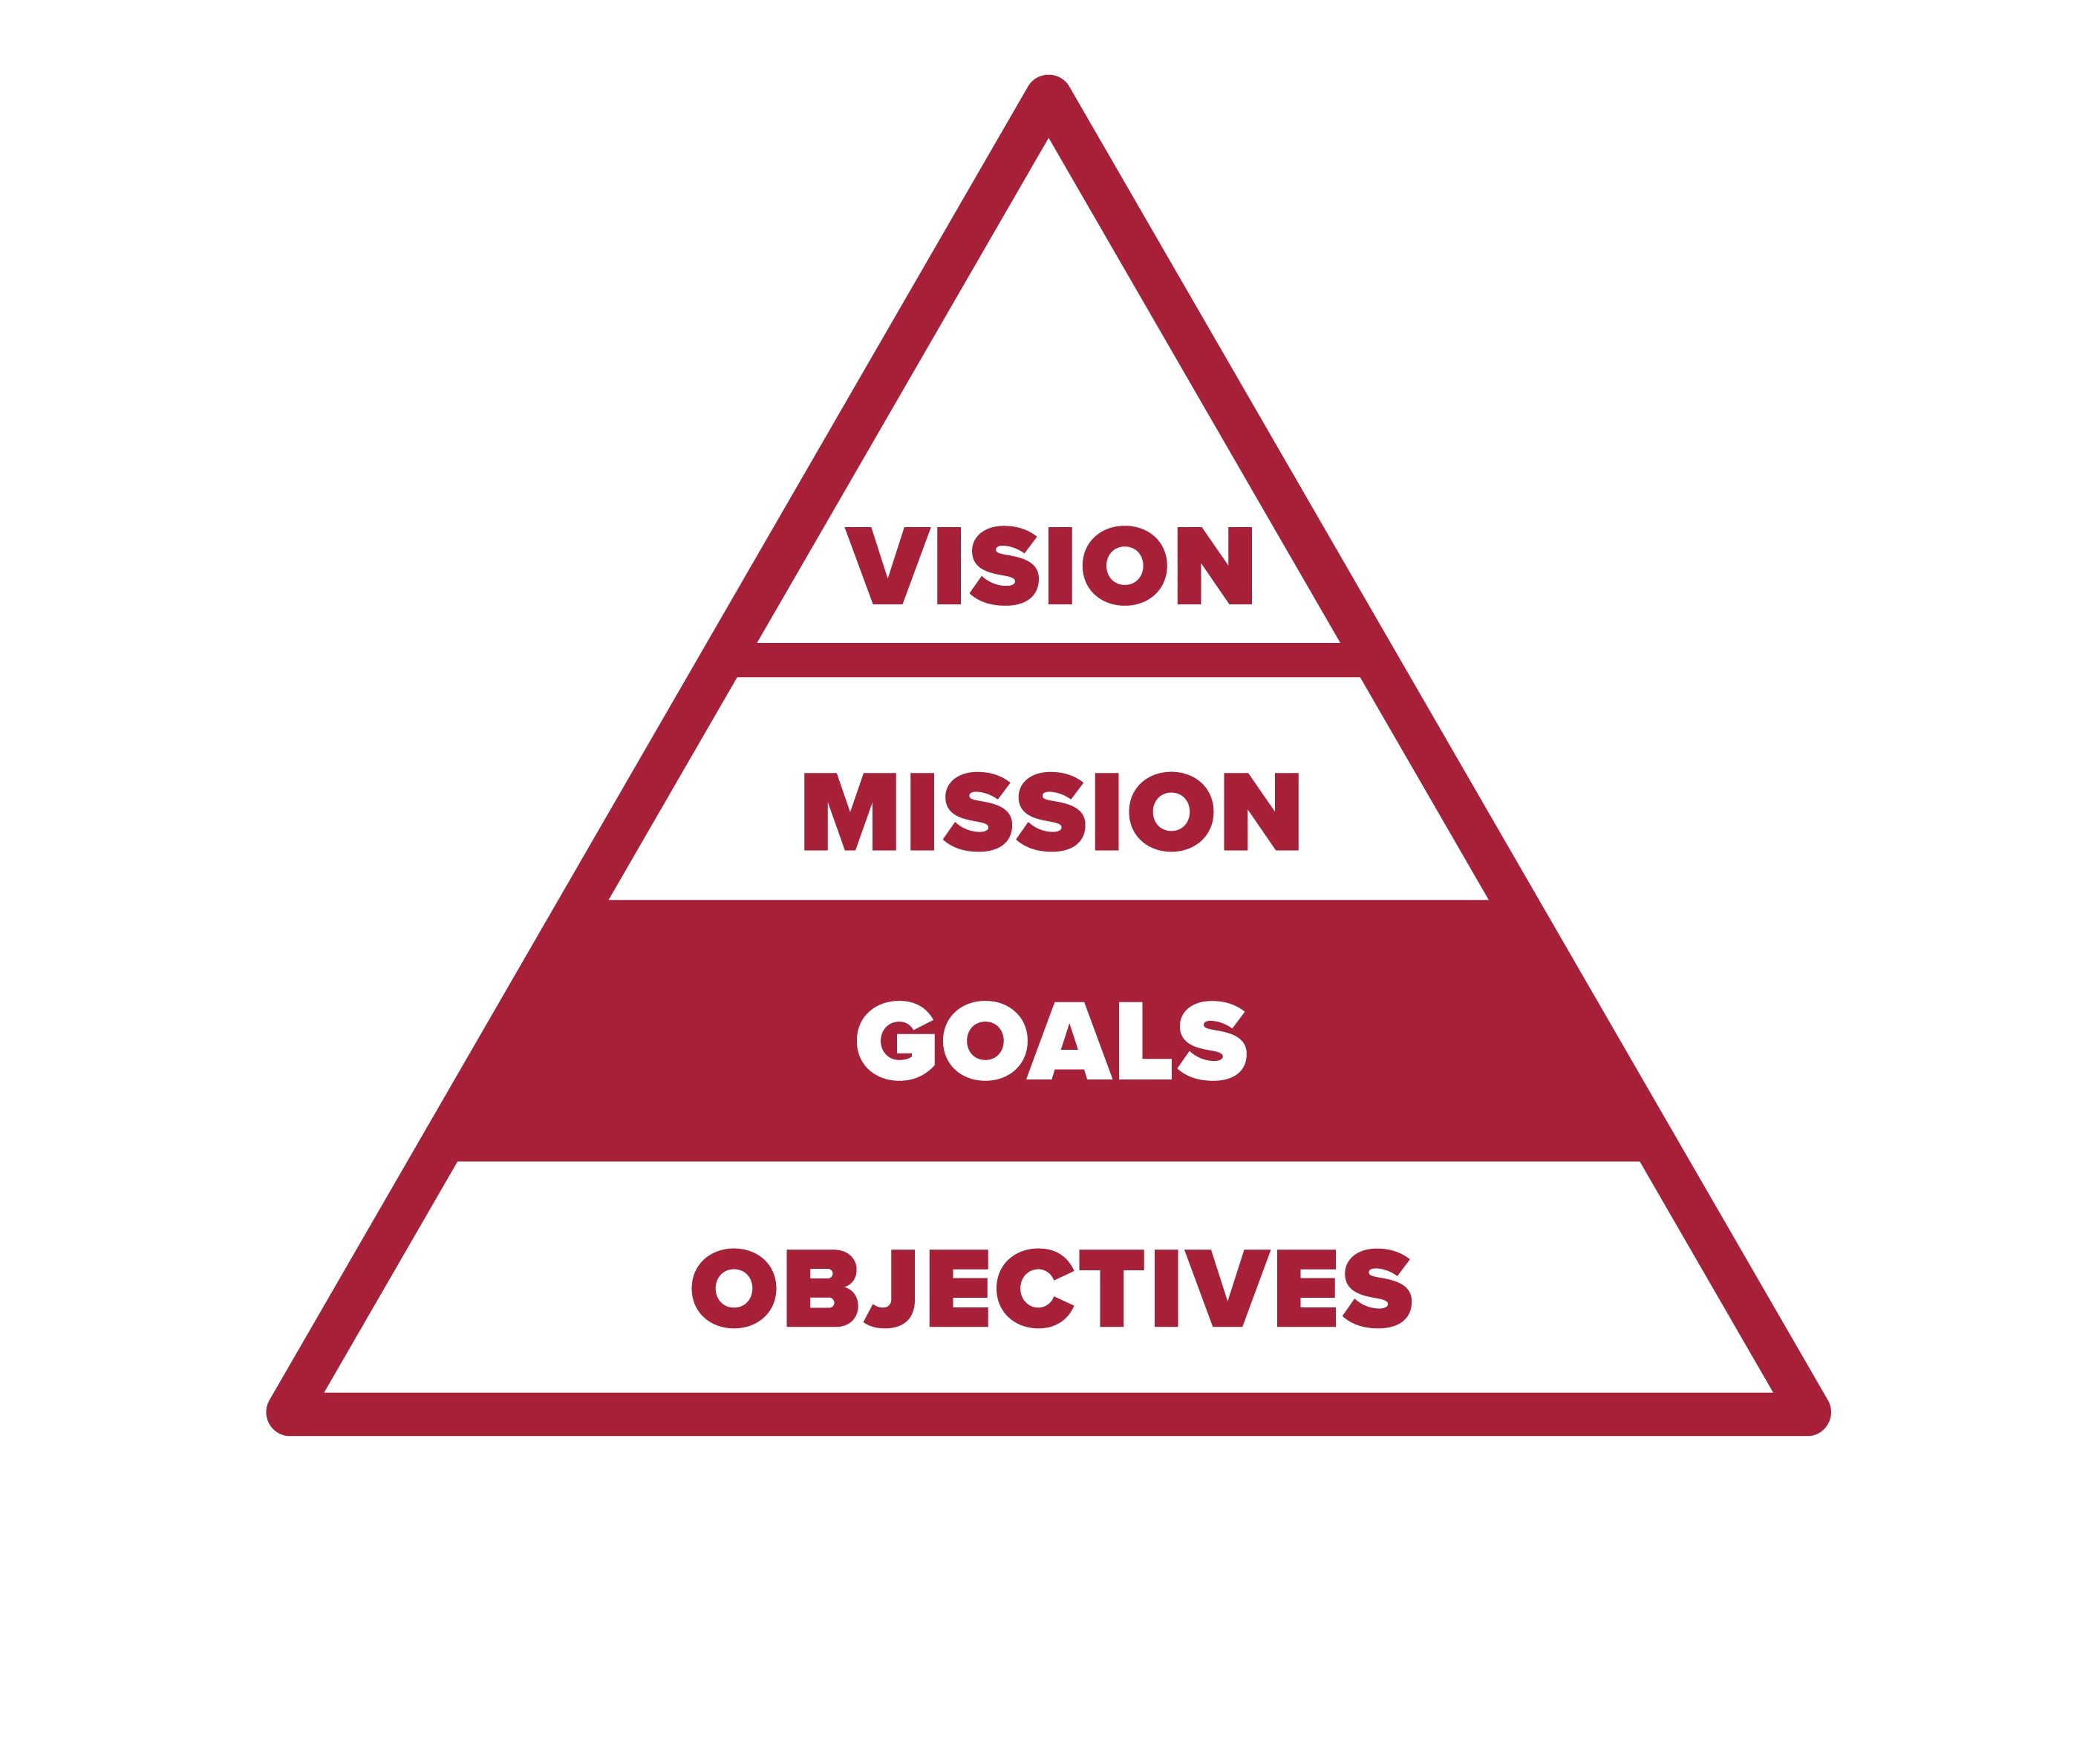 Image of goals icon